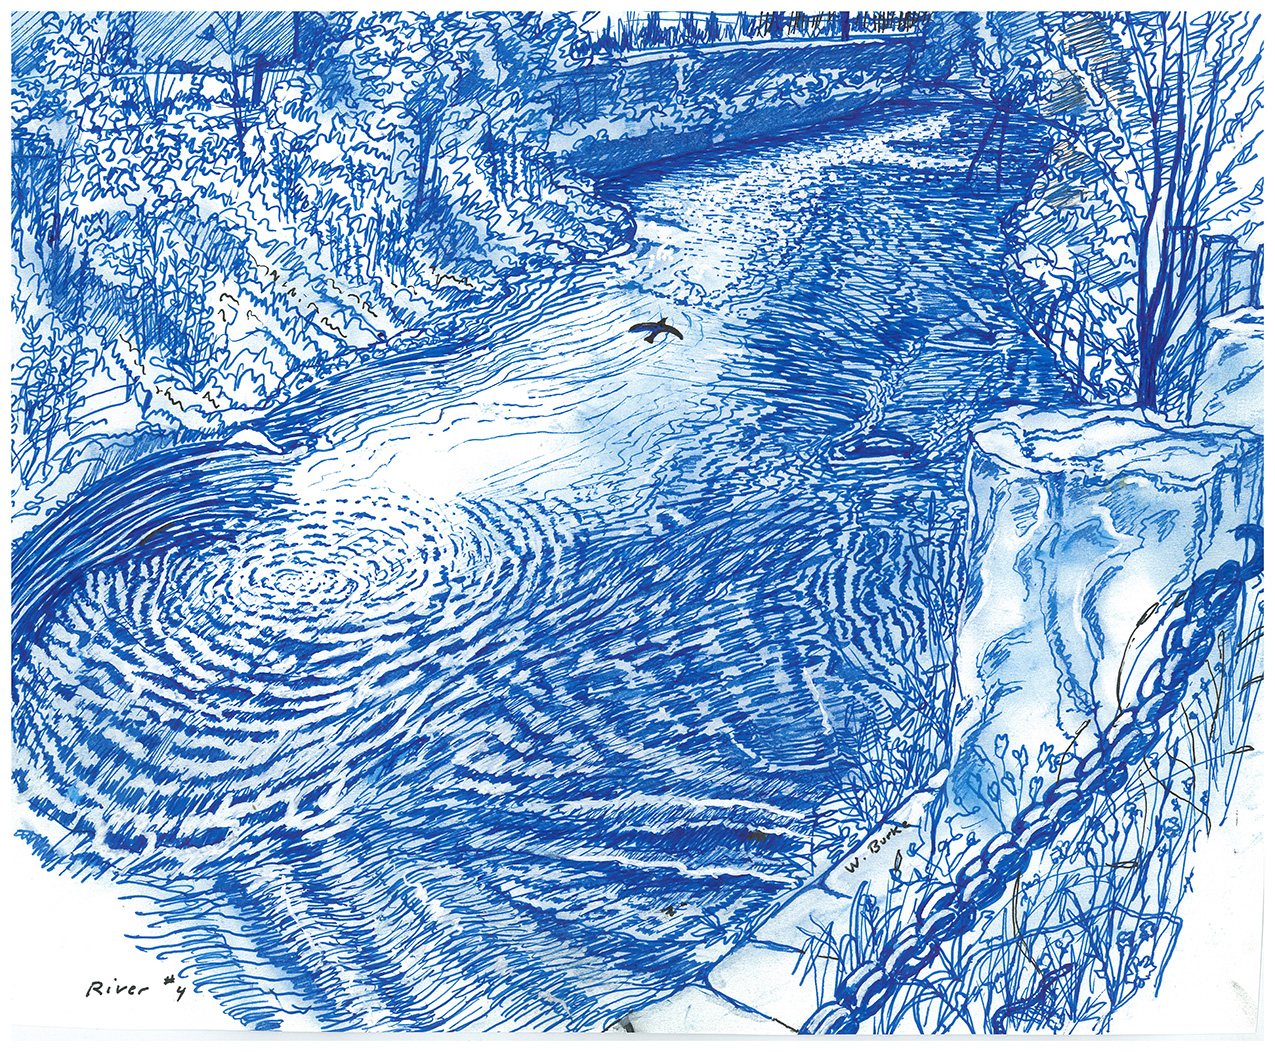 River #4 by Wayne F Burke: blue drawing of a river